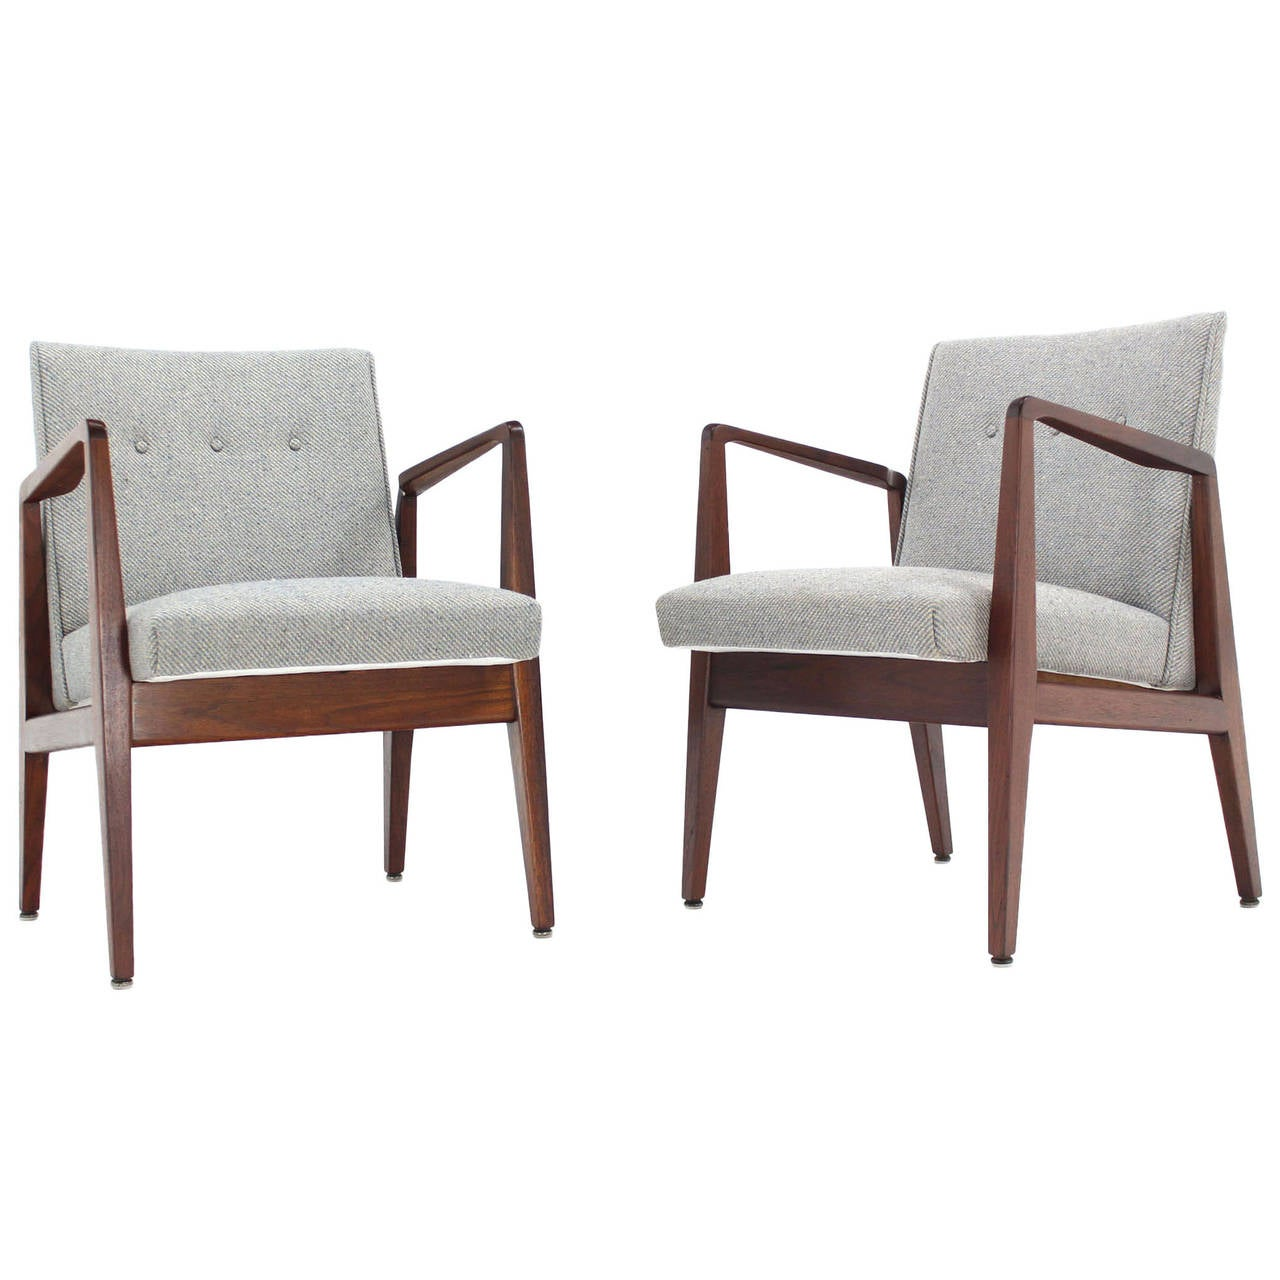 Pair of Jens Risom Lounge Chairs with New Wool Upholstery at 1stdibs